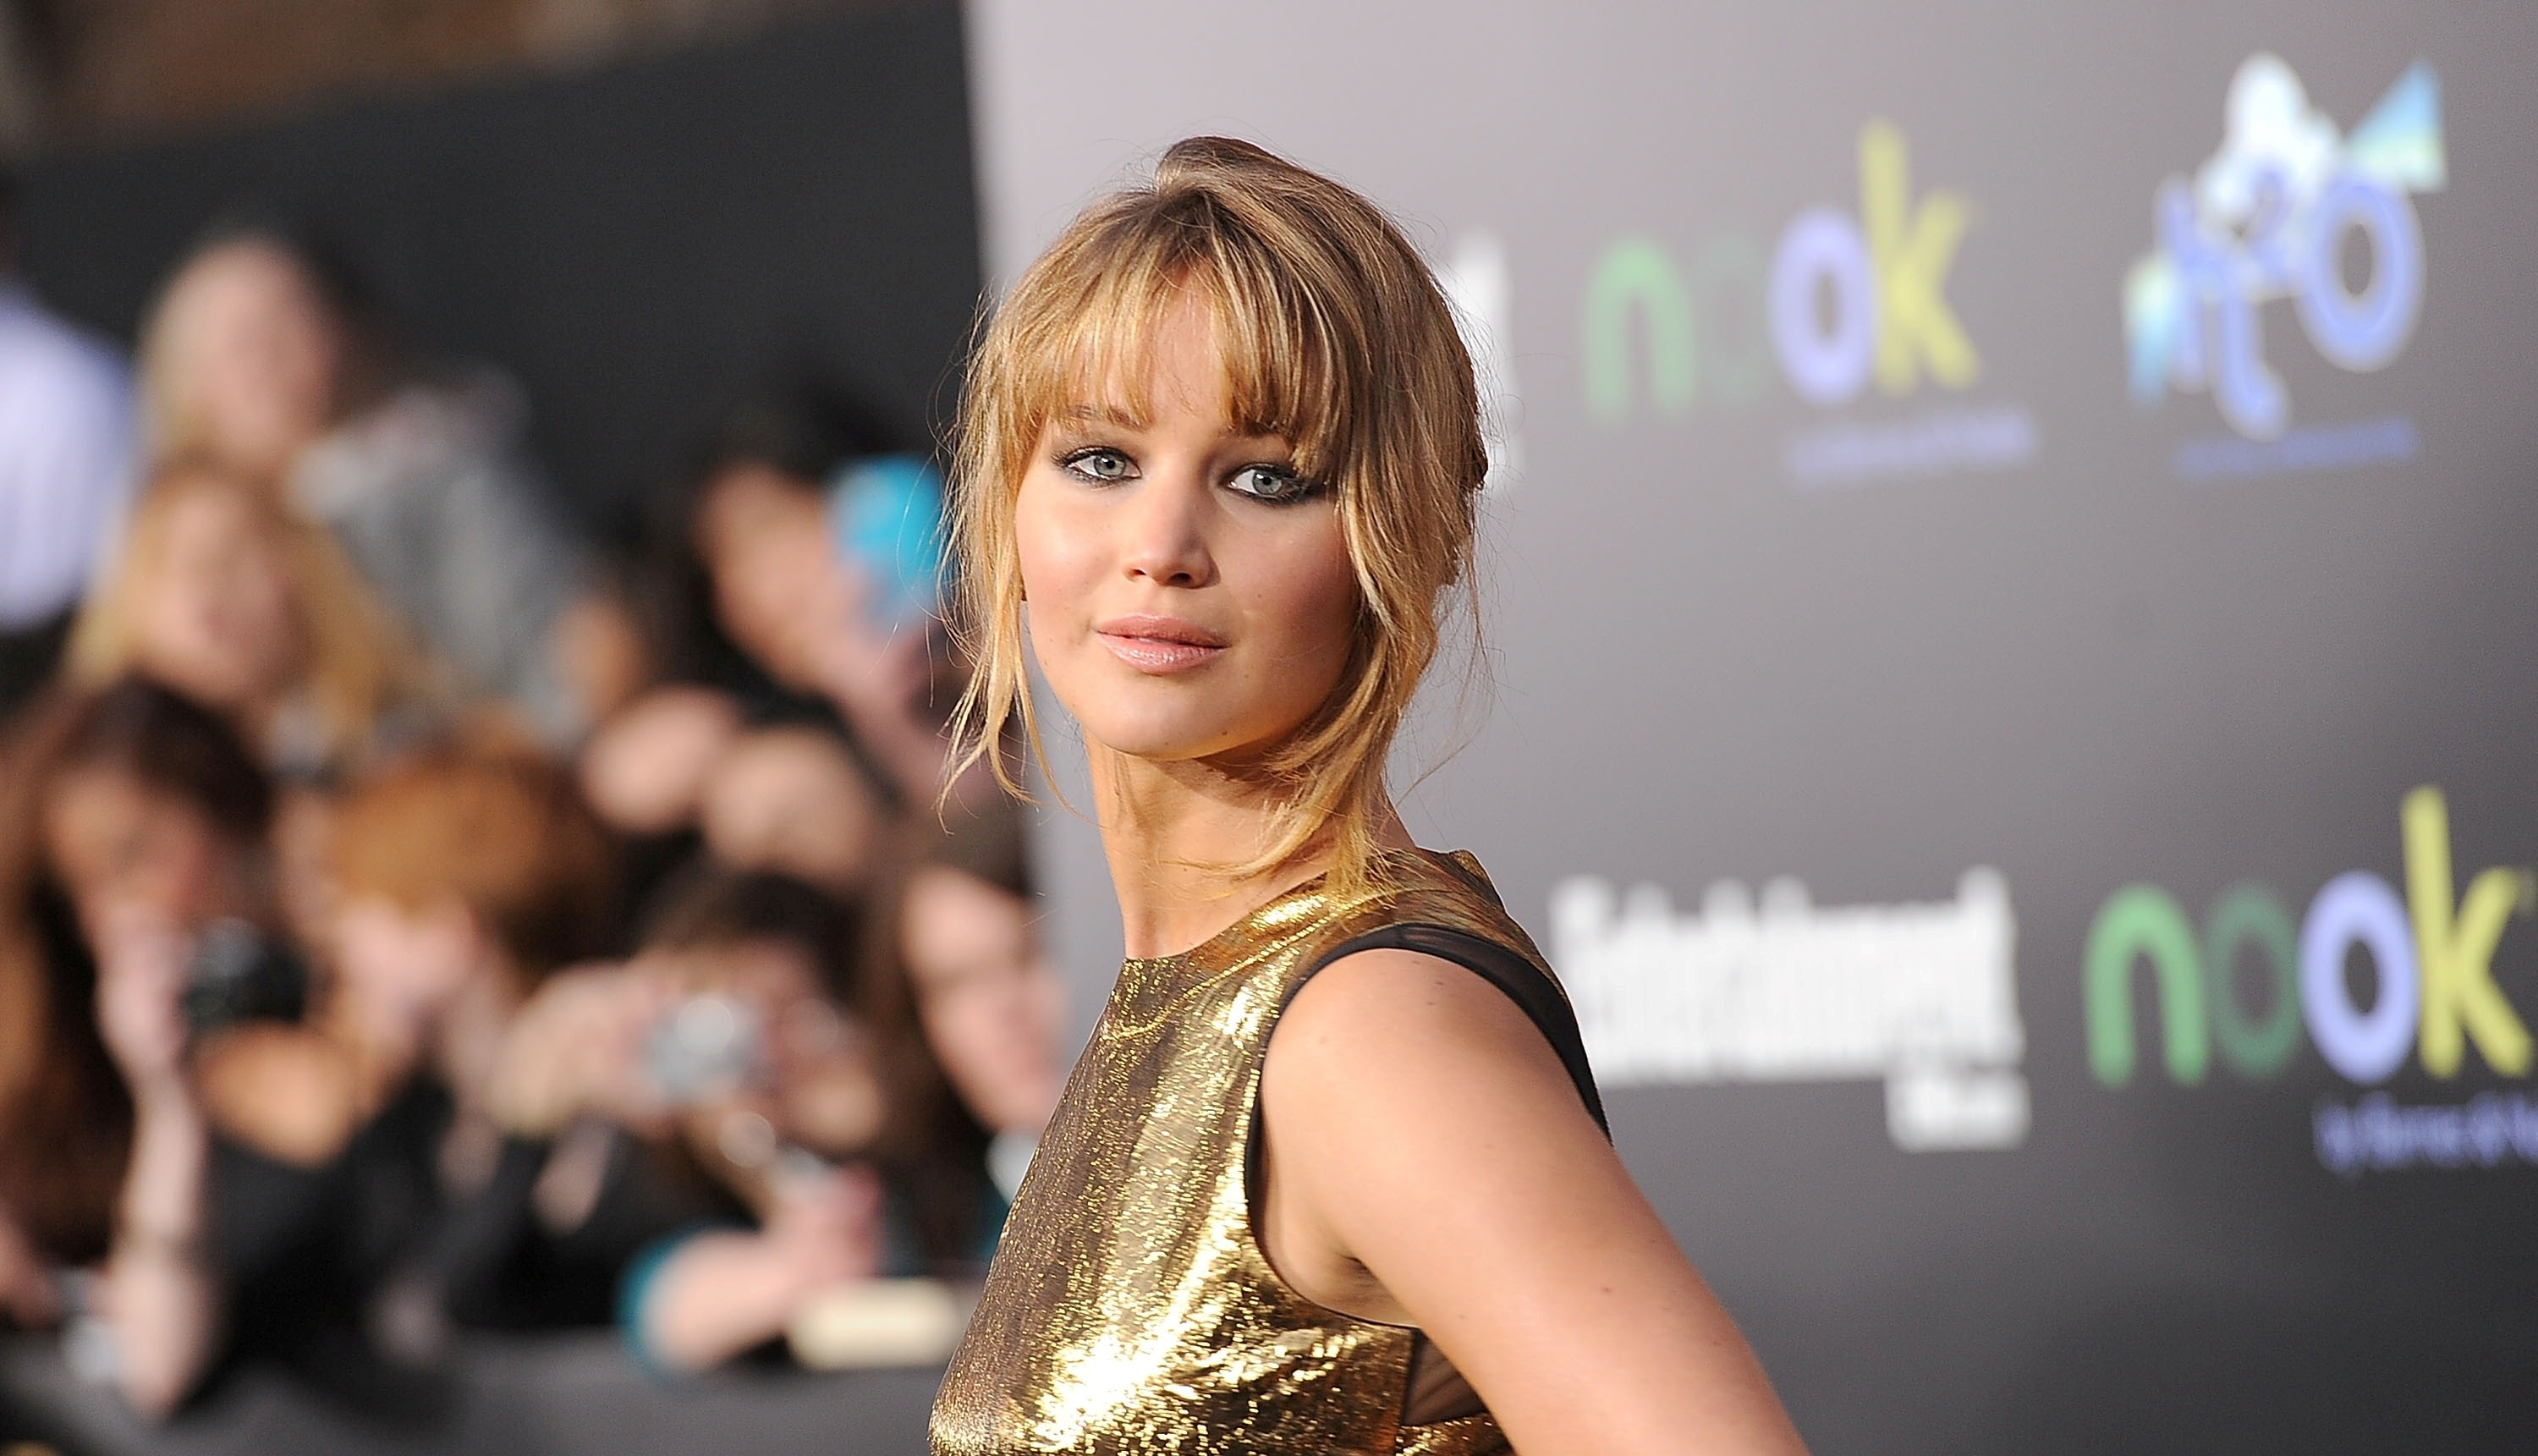 Exclusive Jennifer Lawrence Pics For Pc